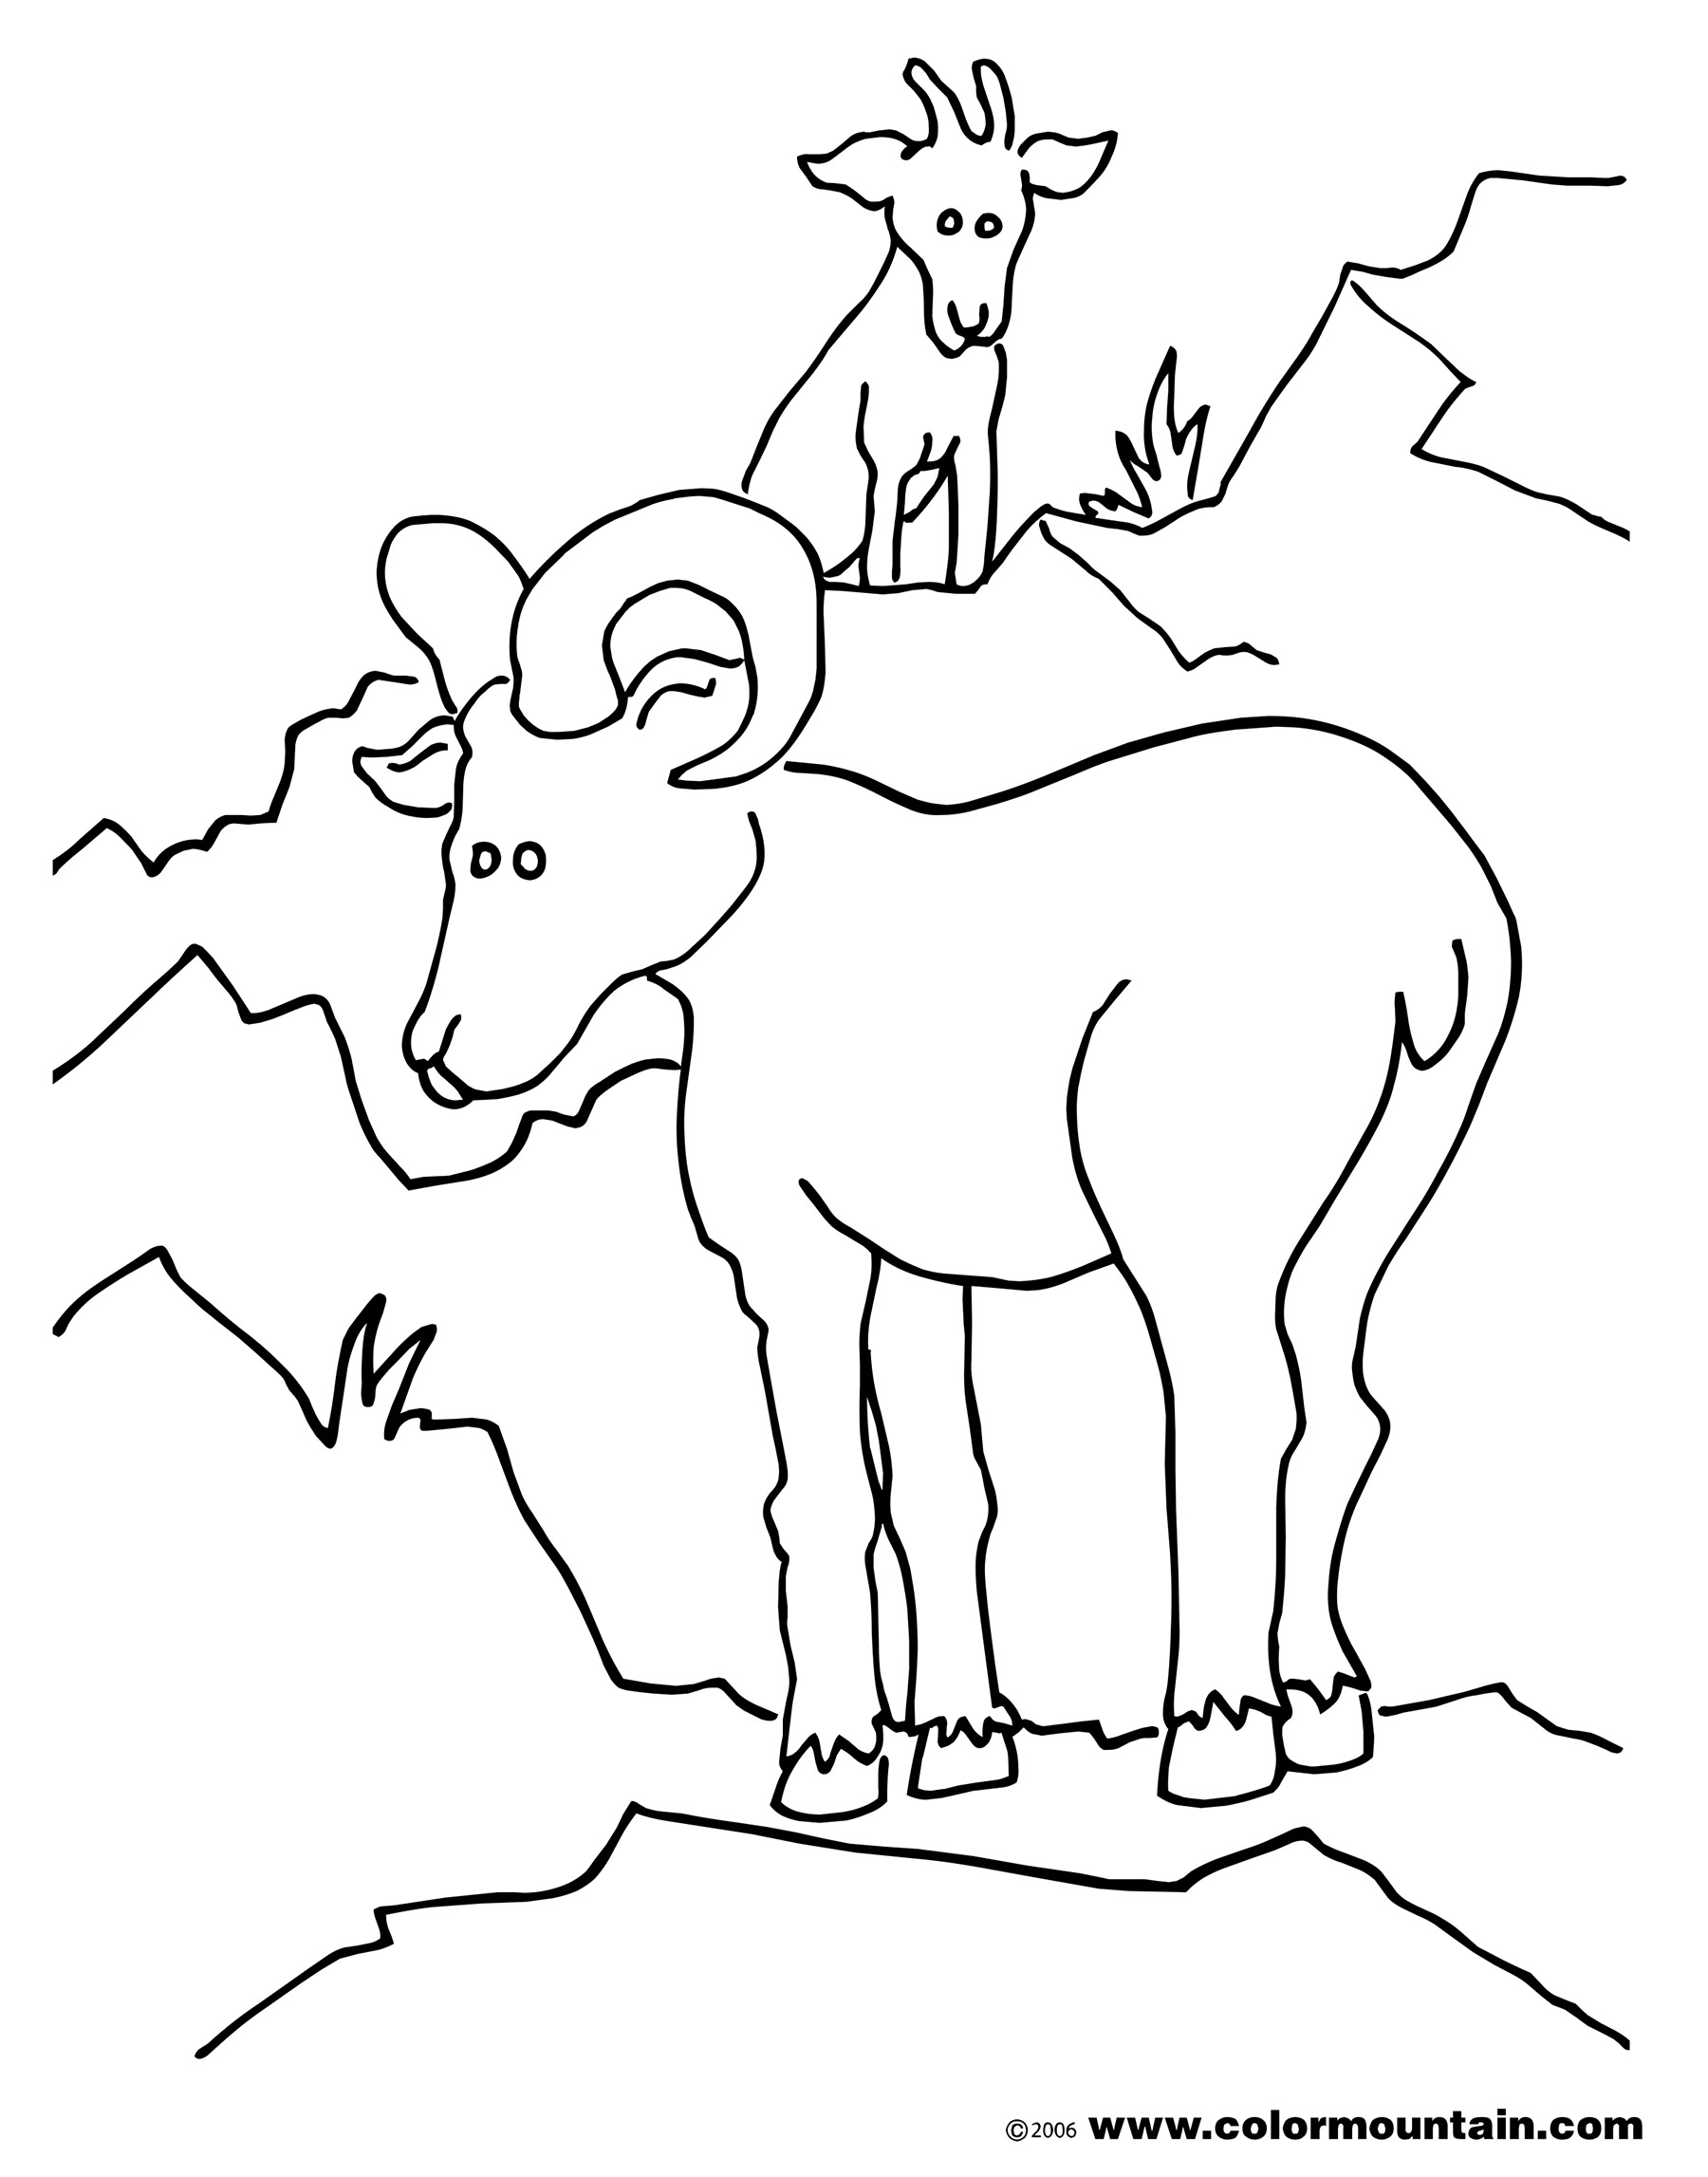 Mountain Goat Drawing at GetDrawings